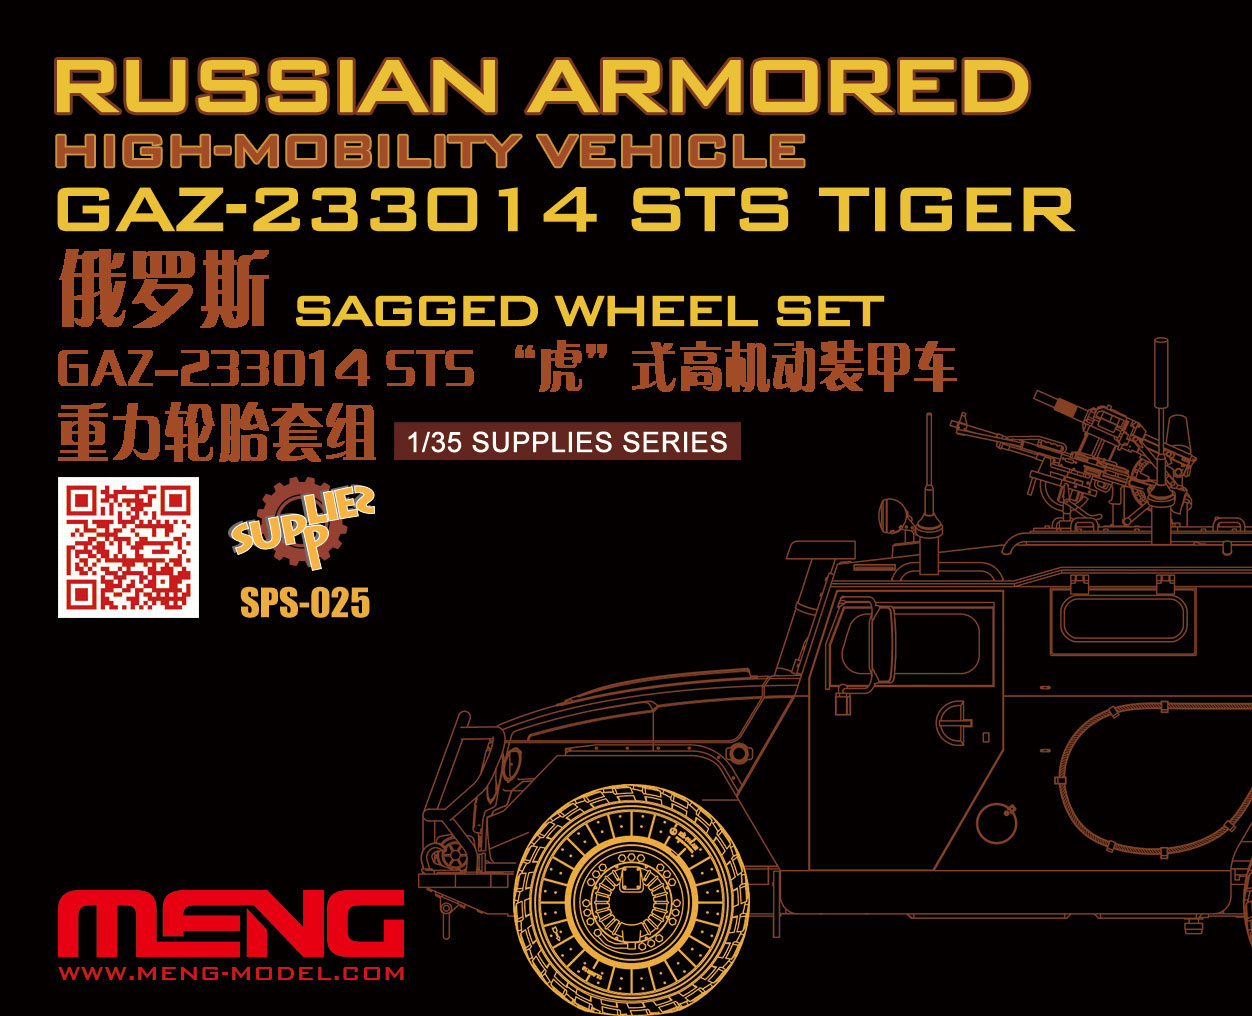 Meng 1/35 Russian Armored High-Mobility Vehicle Gaz-233014 Sts Tiger Sagged Wheel Set (Resin)